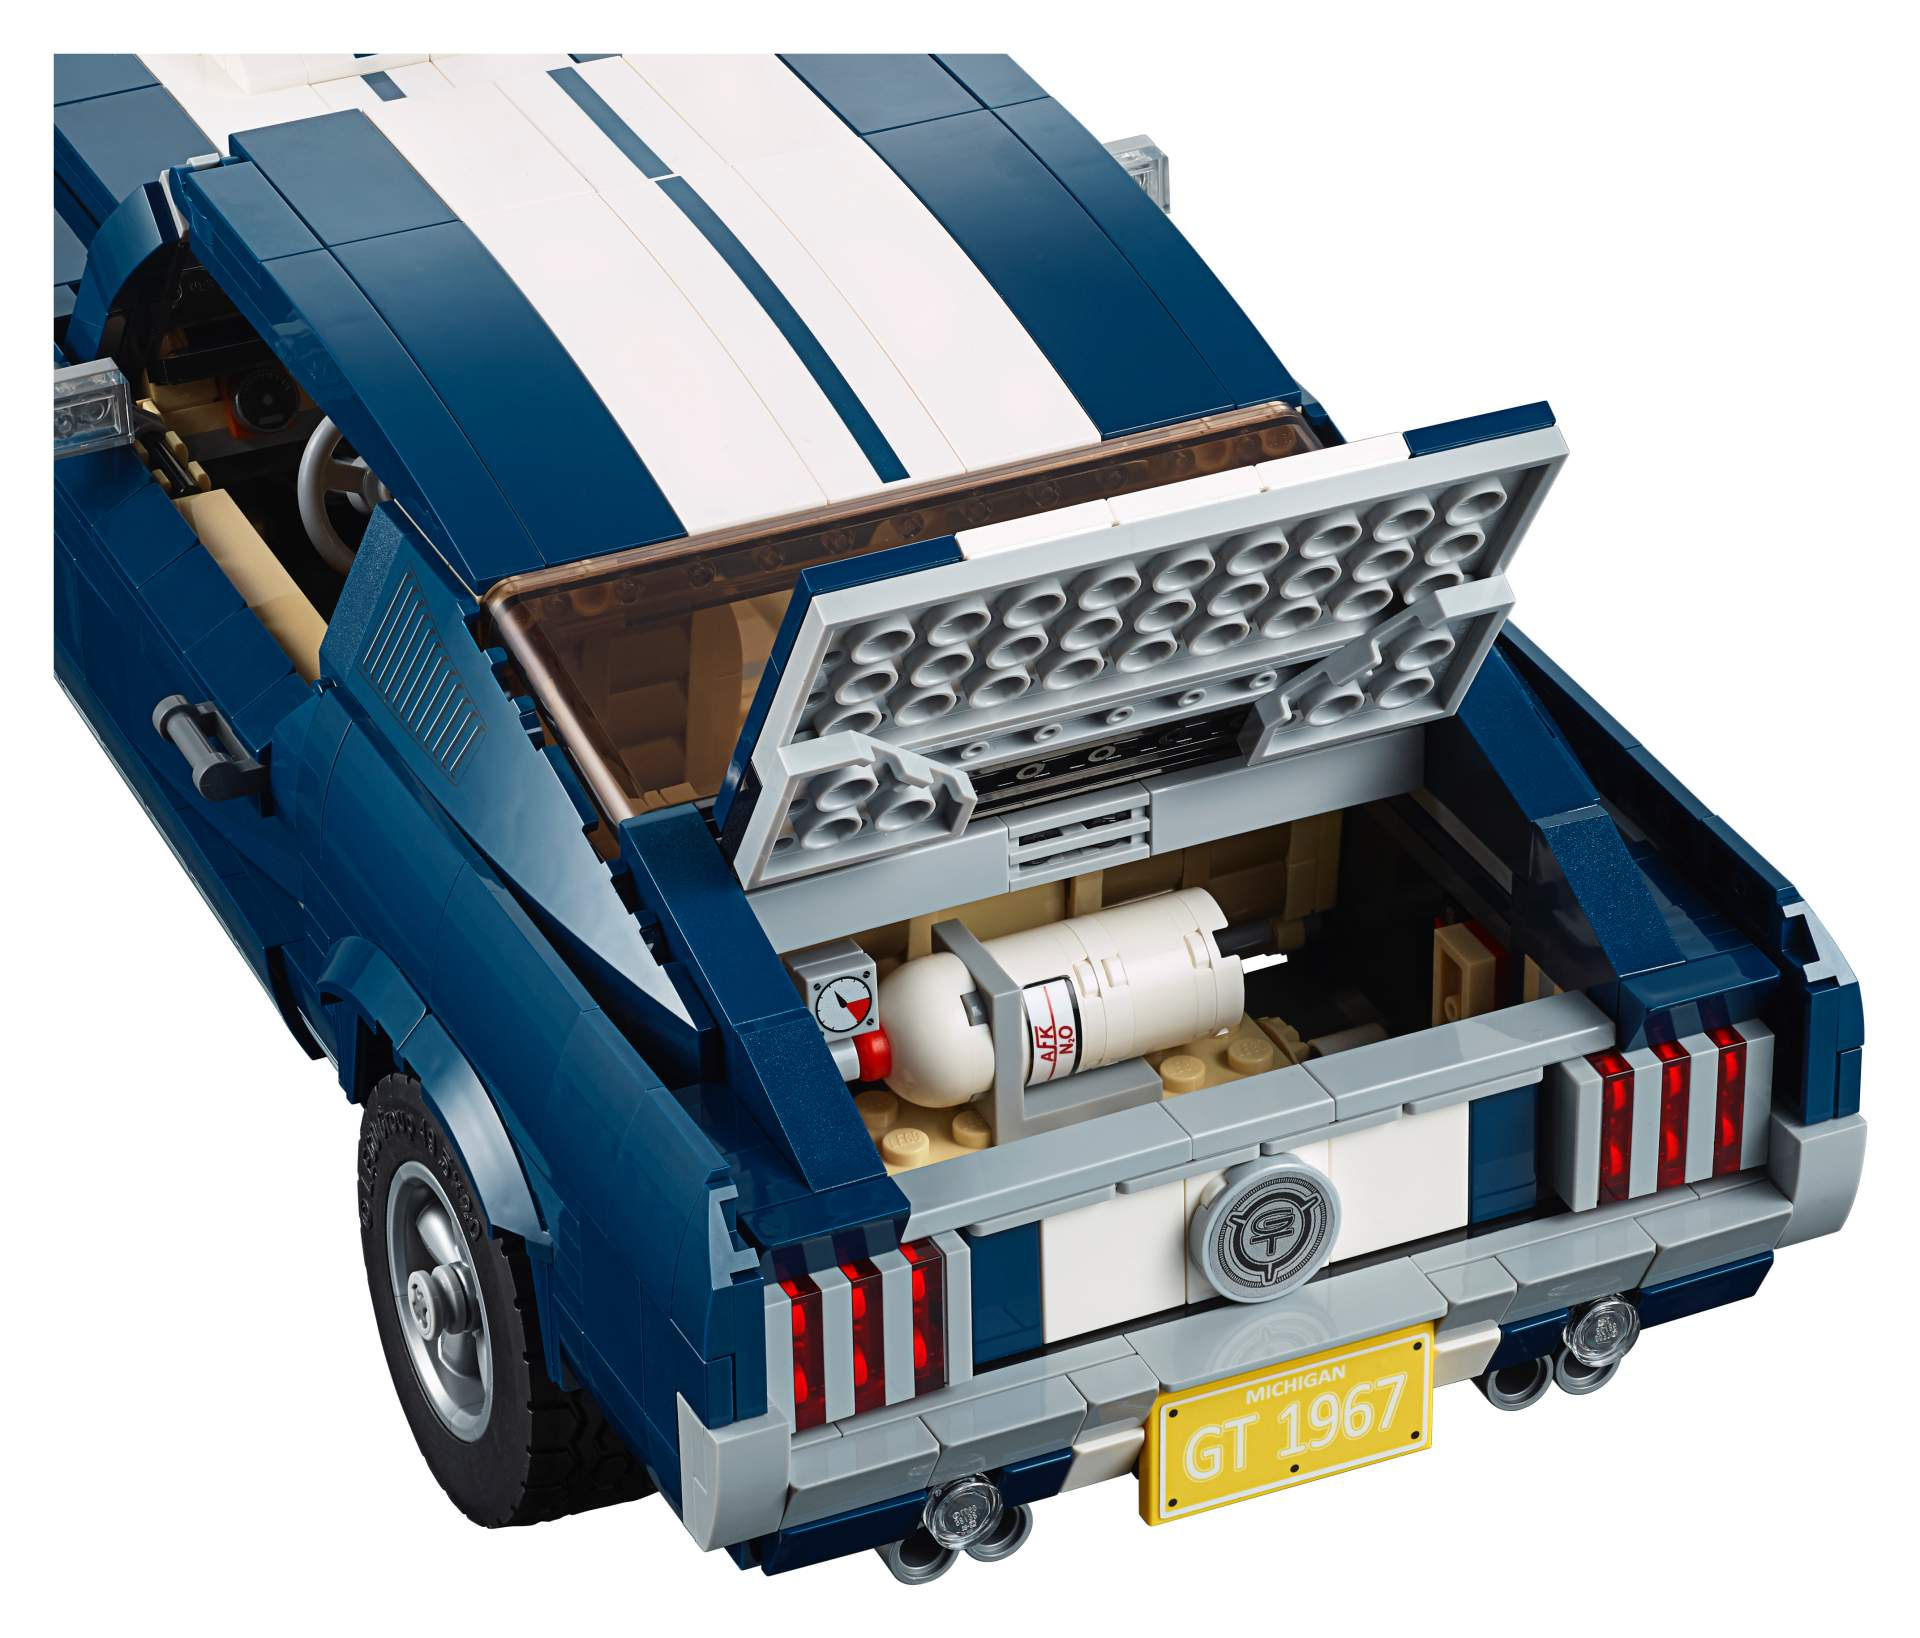 Ford Mustang GT 1967 Lego Creator Set (15)